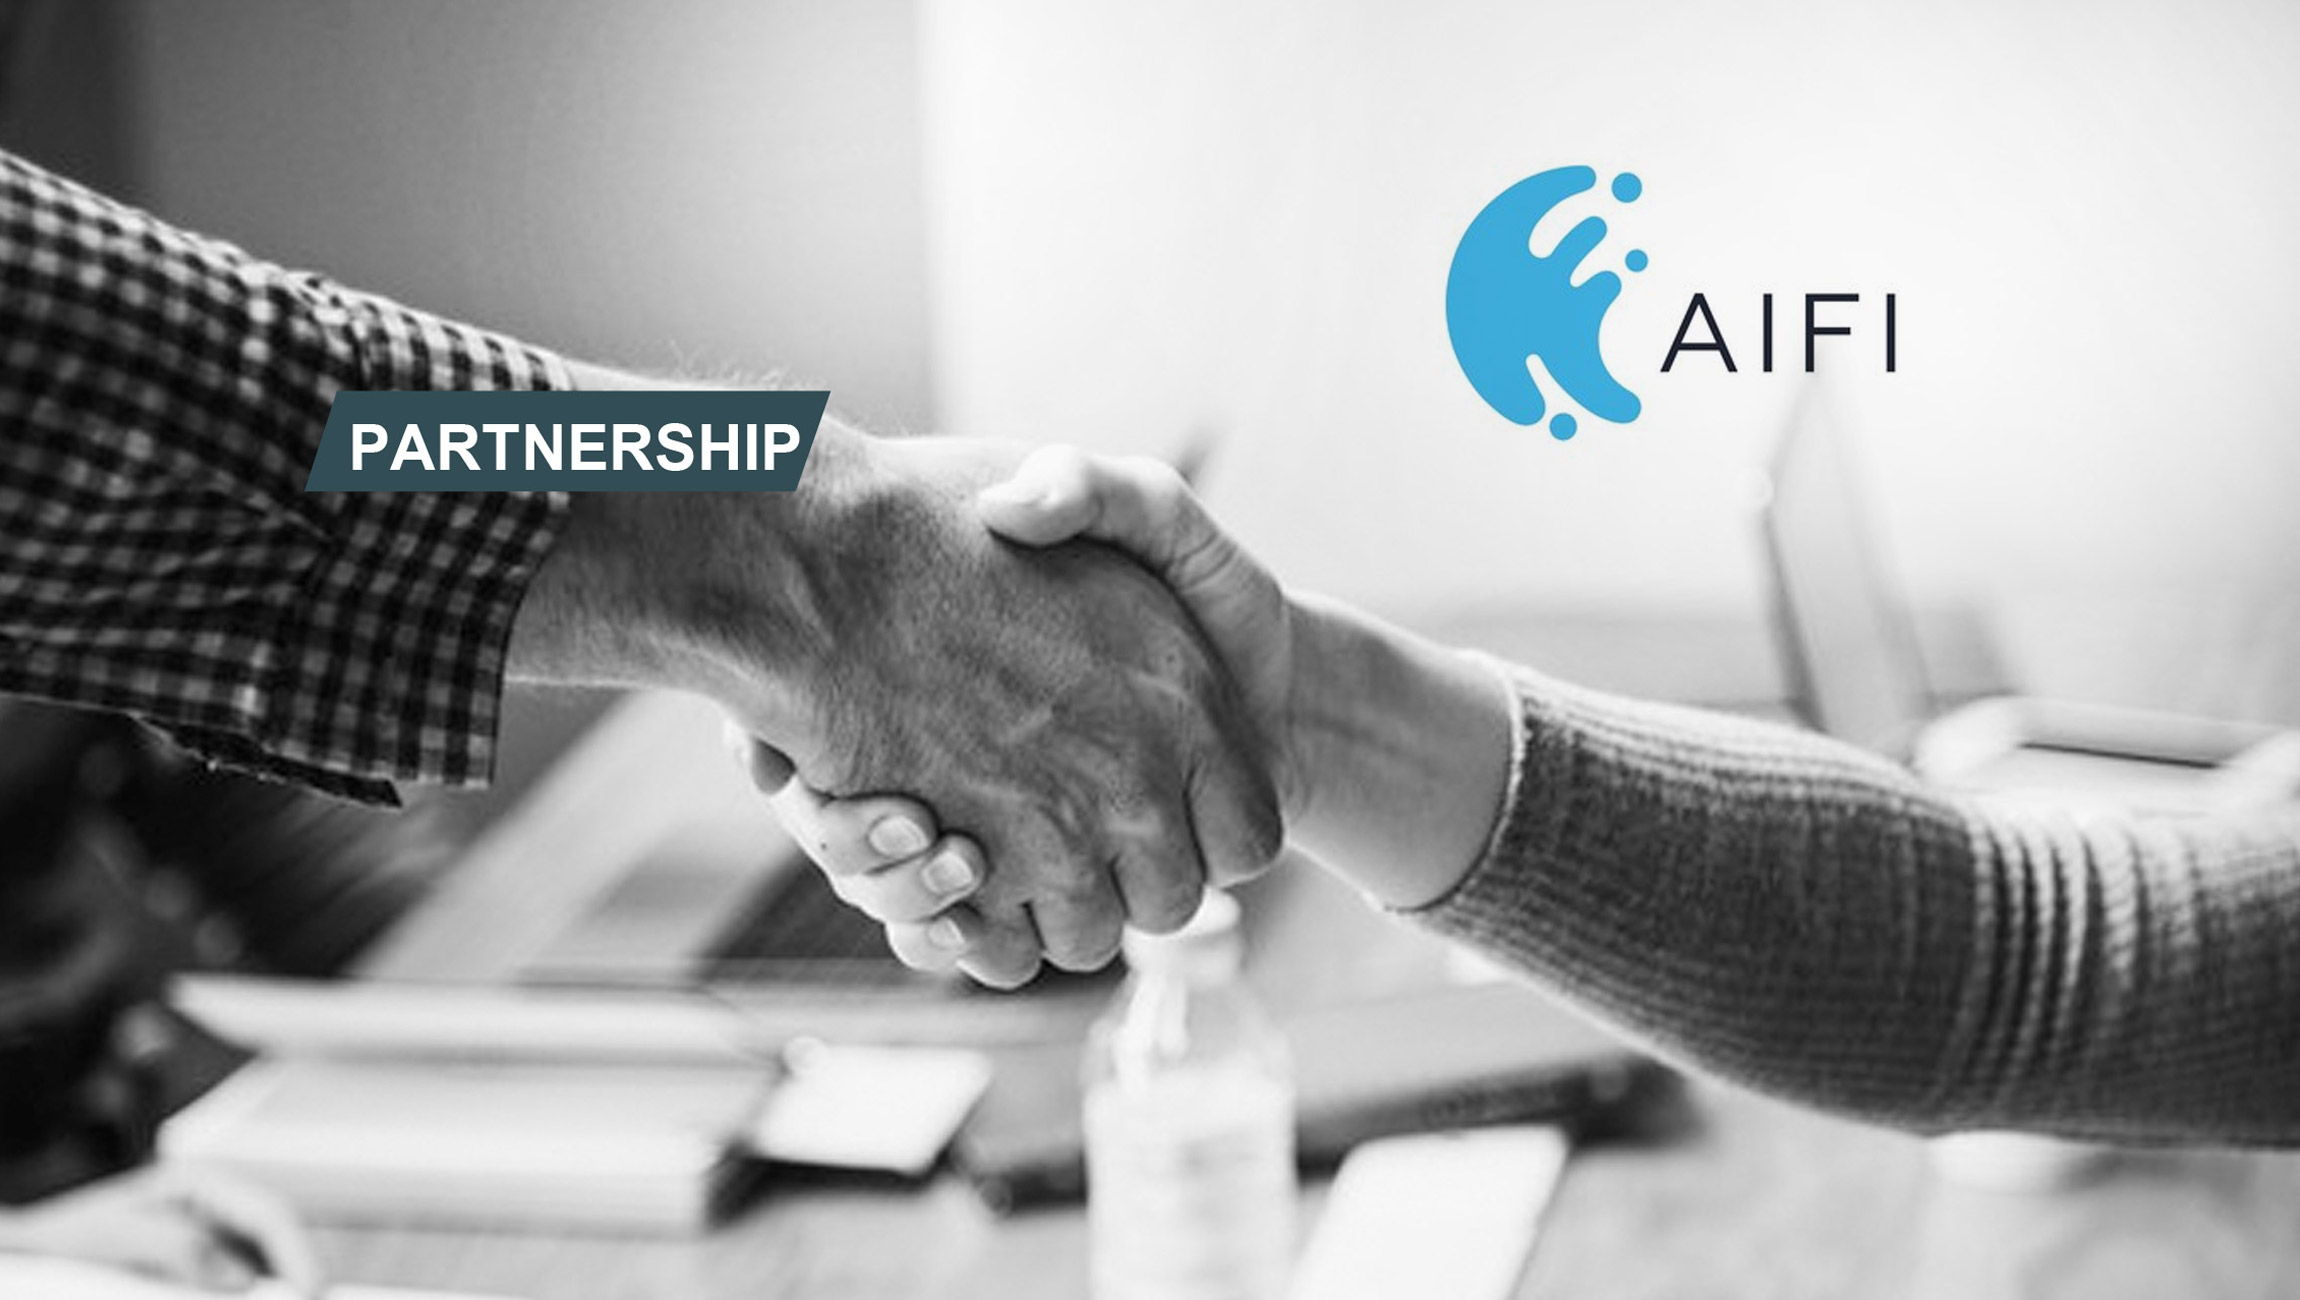 AiFi-and-Loop-Neighborhood-Expand-Partnership_-Rolling-Out-Autonomous-Shopping-Technology-to-Two-Additional-Stores-in-California